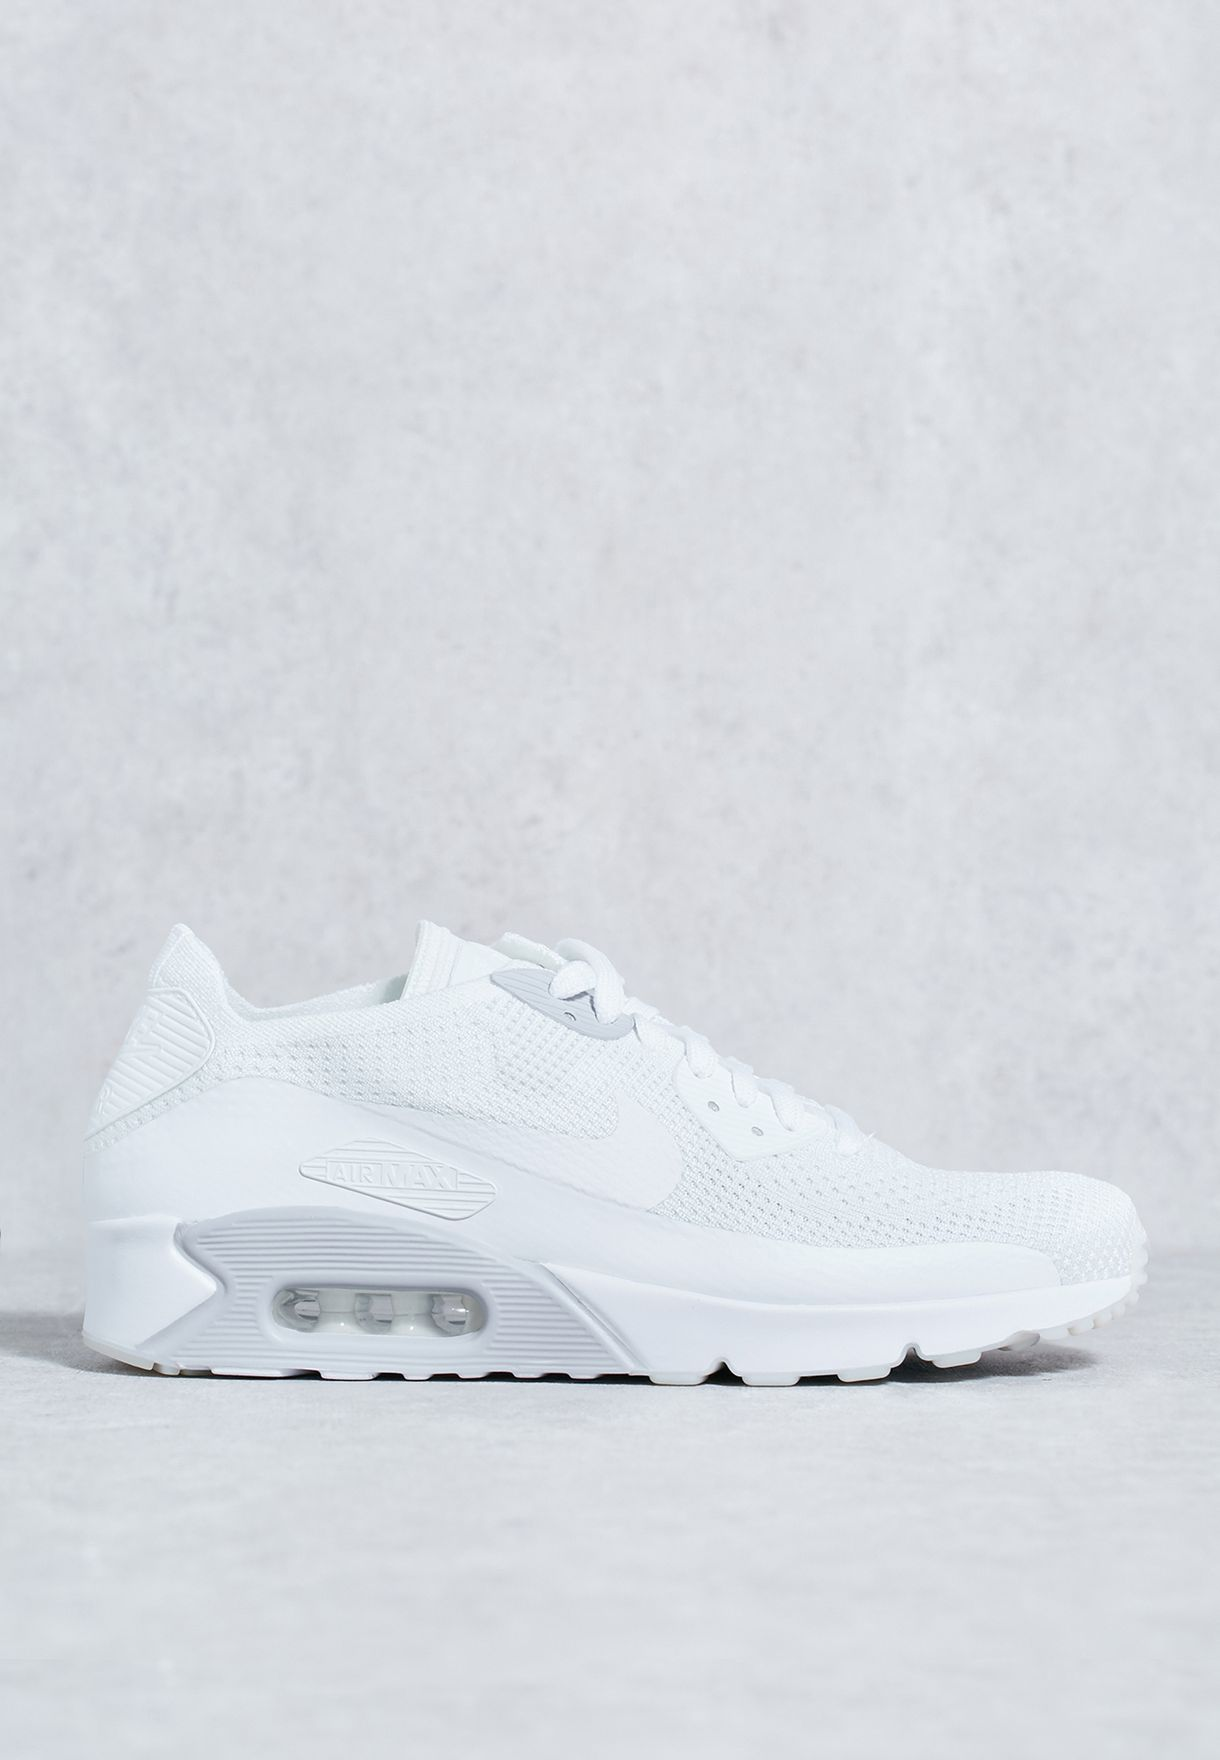 d95f0123e69 Shop Nike white Air Max 90 Ultra 2.0 Flyknit 875943-101 for Men in ...